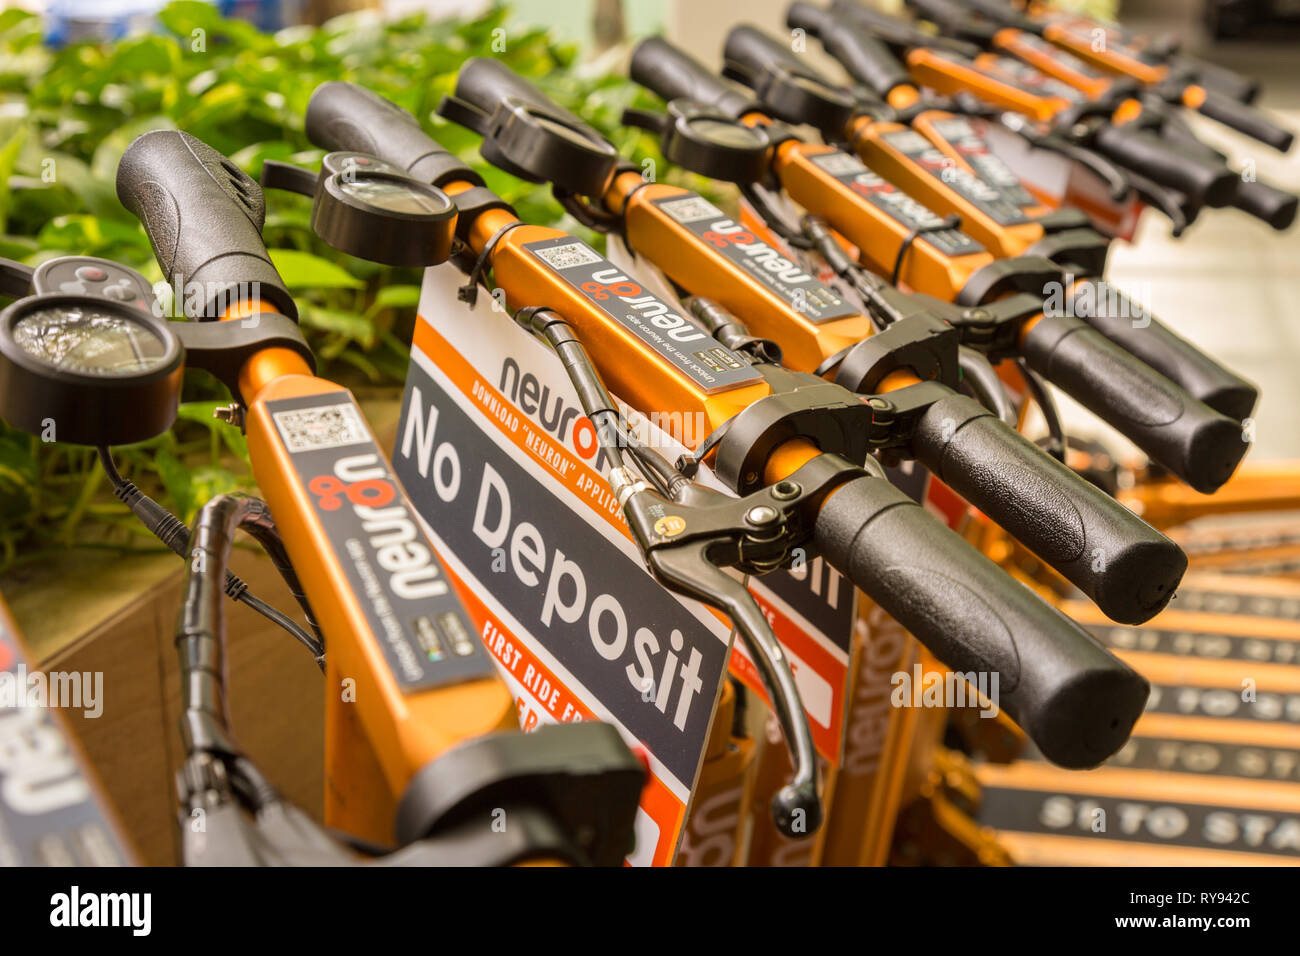 Neuron Mobility scooters lined up, Singapore - Stock Image